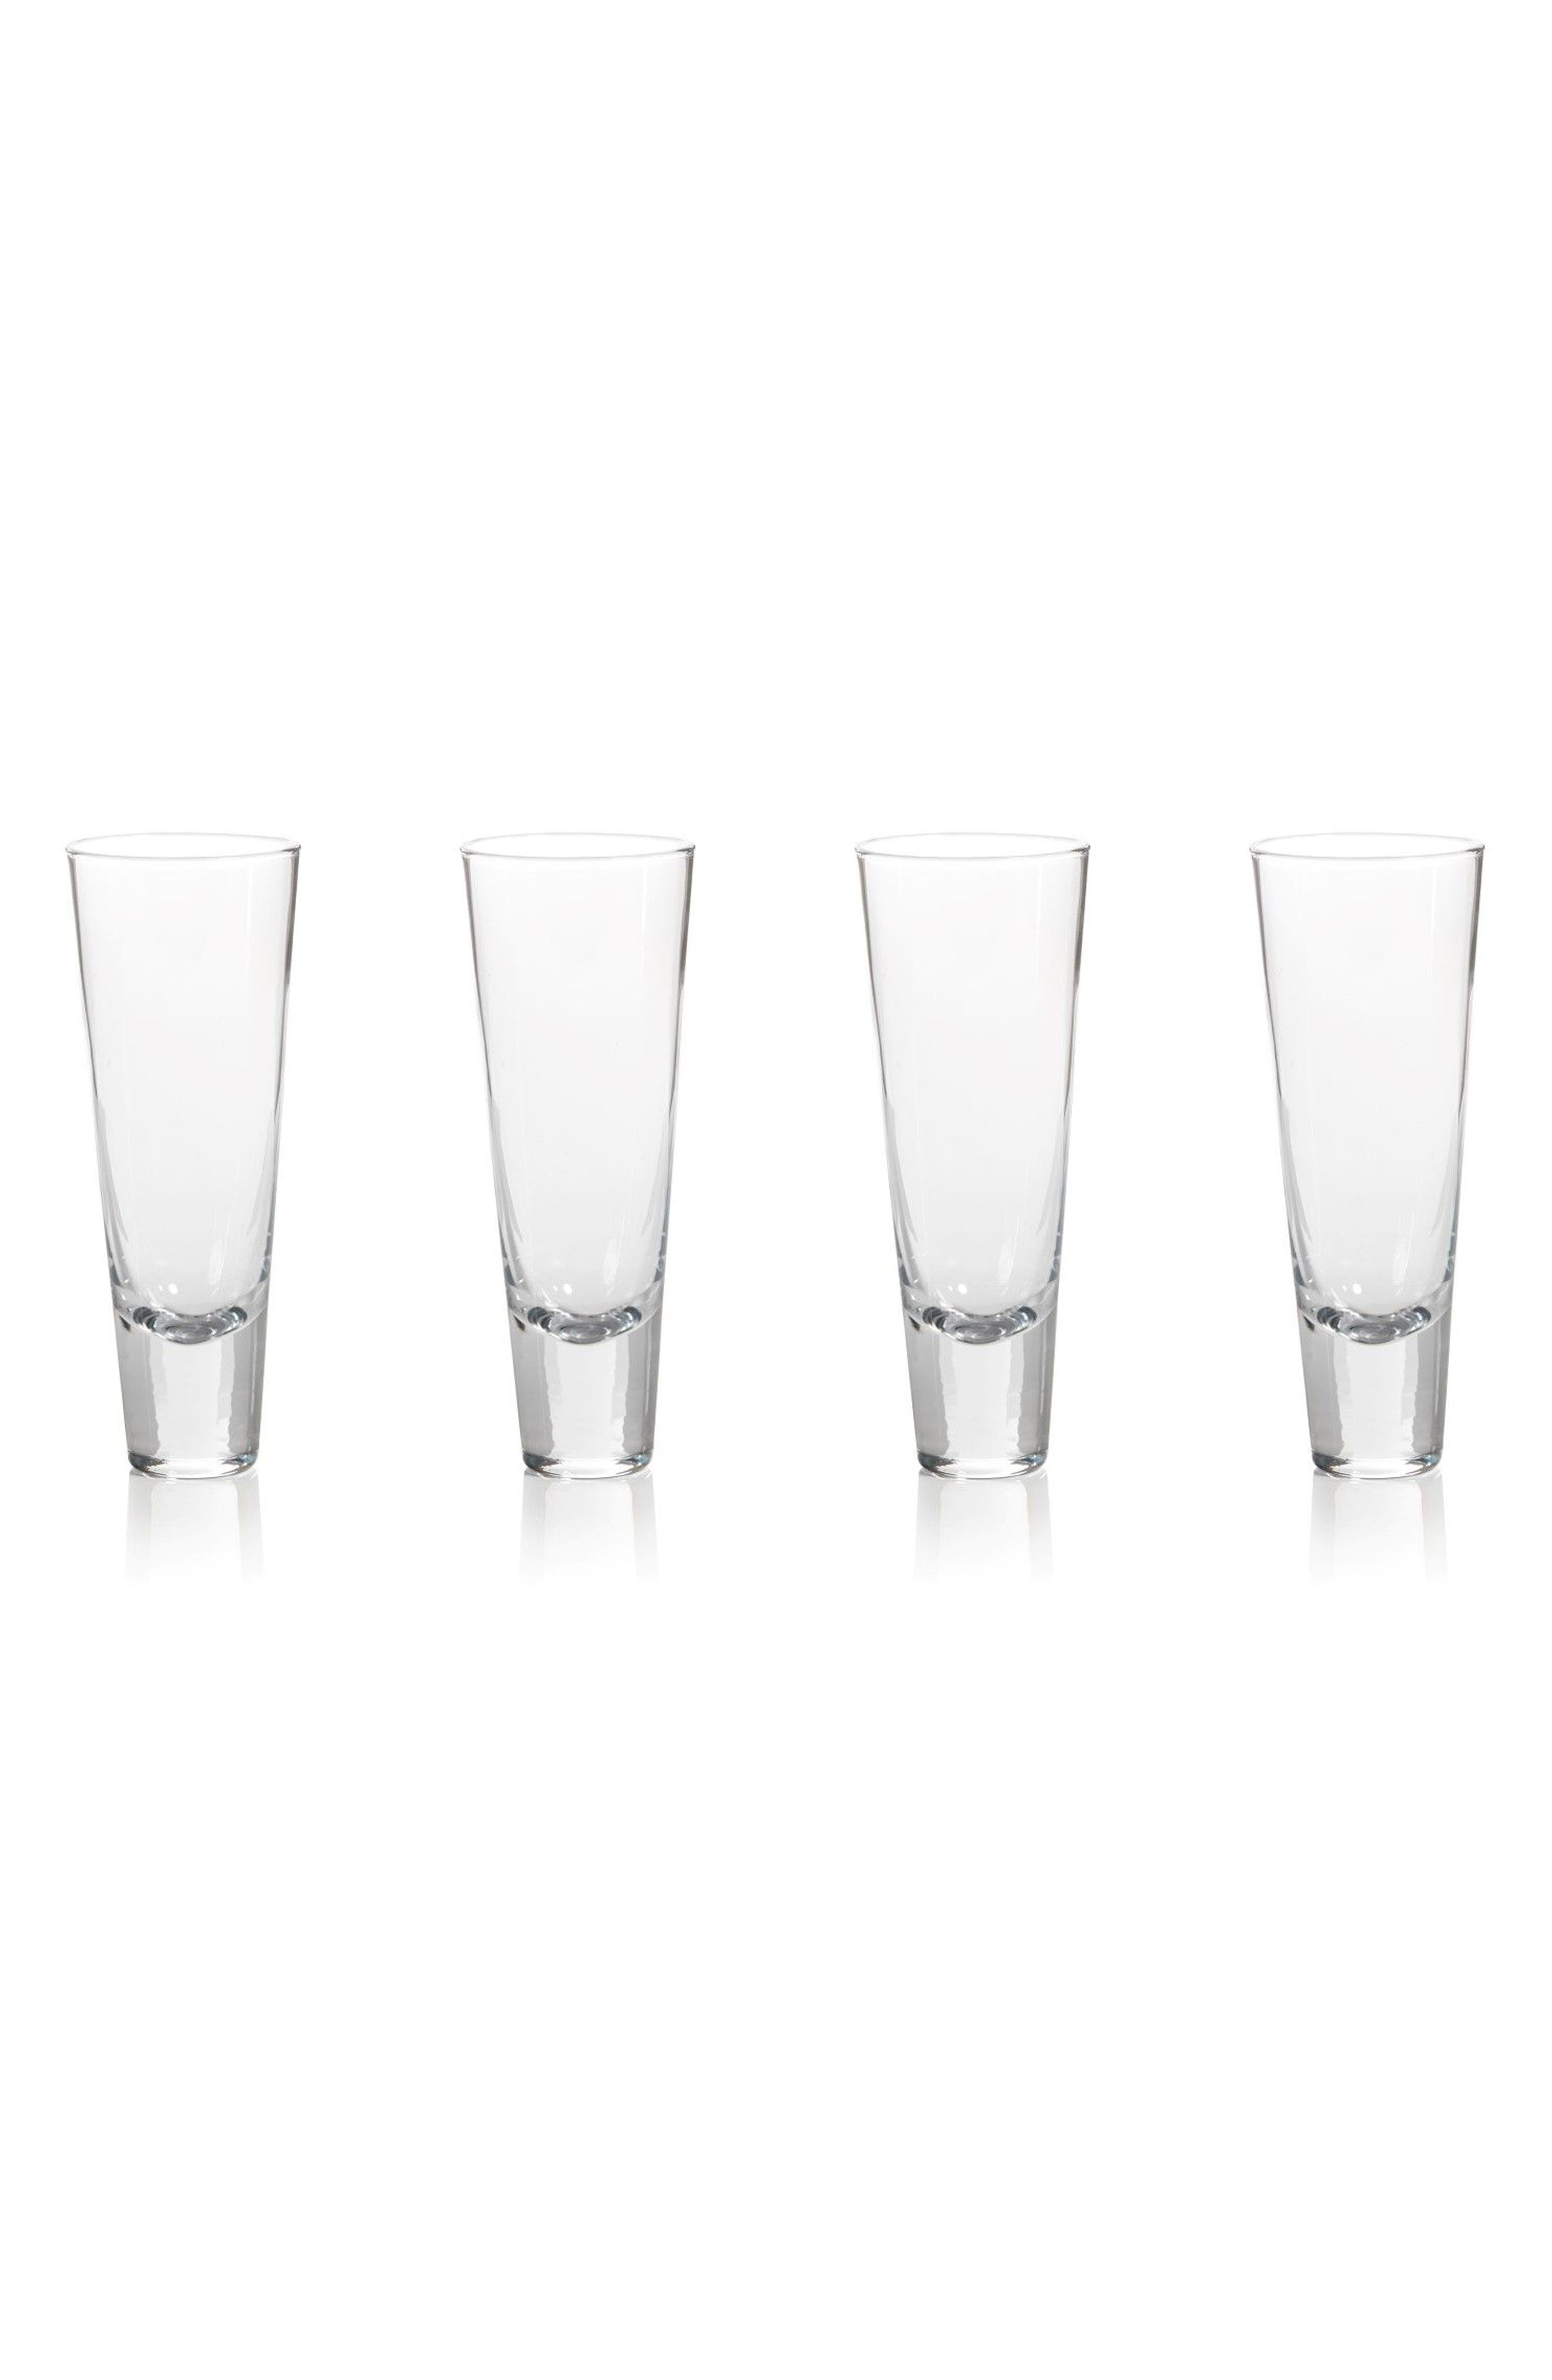 Anatole Set of 4 Tapered Glasses,                         Main,                         color, 100